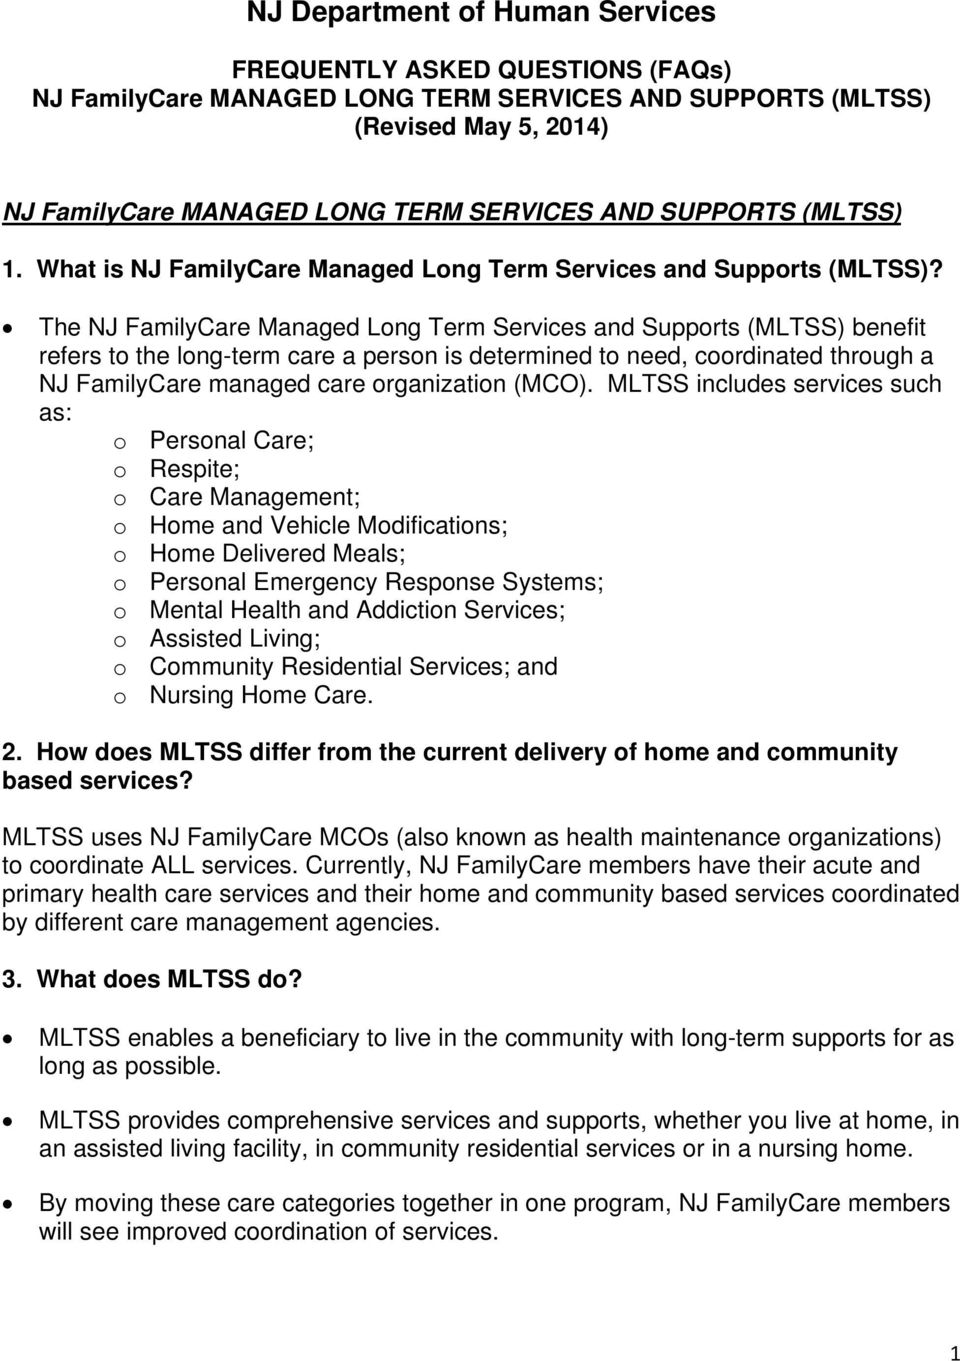 The NJ FamilyCare Managed Long Term Services and Supports (MLTSS) benefit refers to the long-term care a person is determined to need, coordinated through a NJ FamilyCare managed care organization